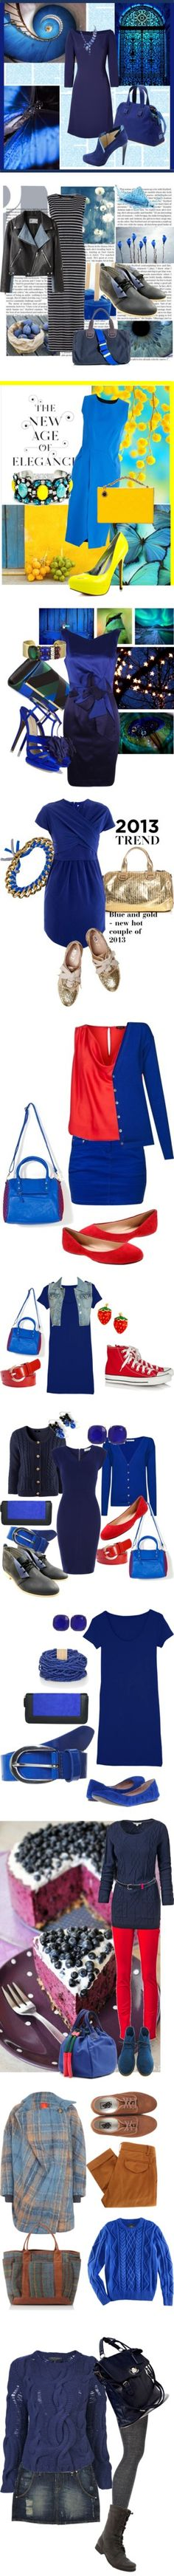 """Blue sets"" by airora ❤ liked on Polyvore"